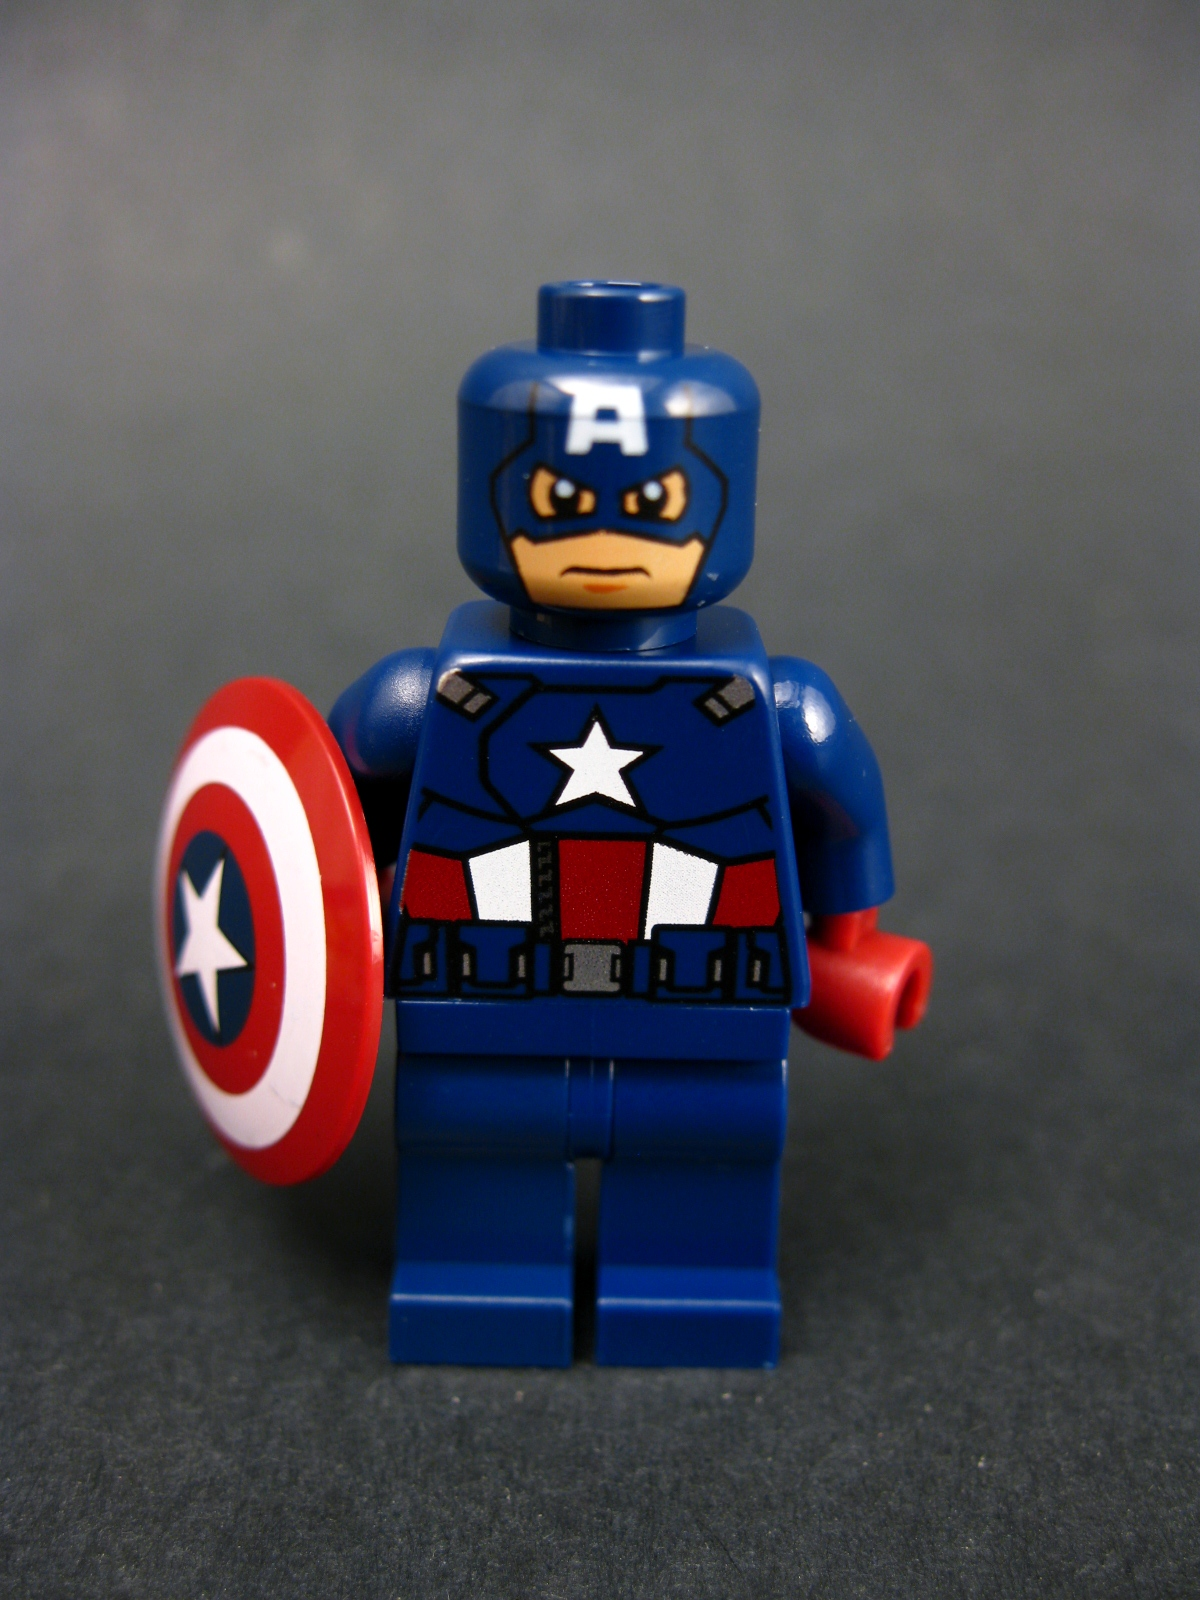 Chase variant lego the avengers captain america 39 s avenging cycle - Lego capitaine america ...